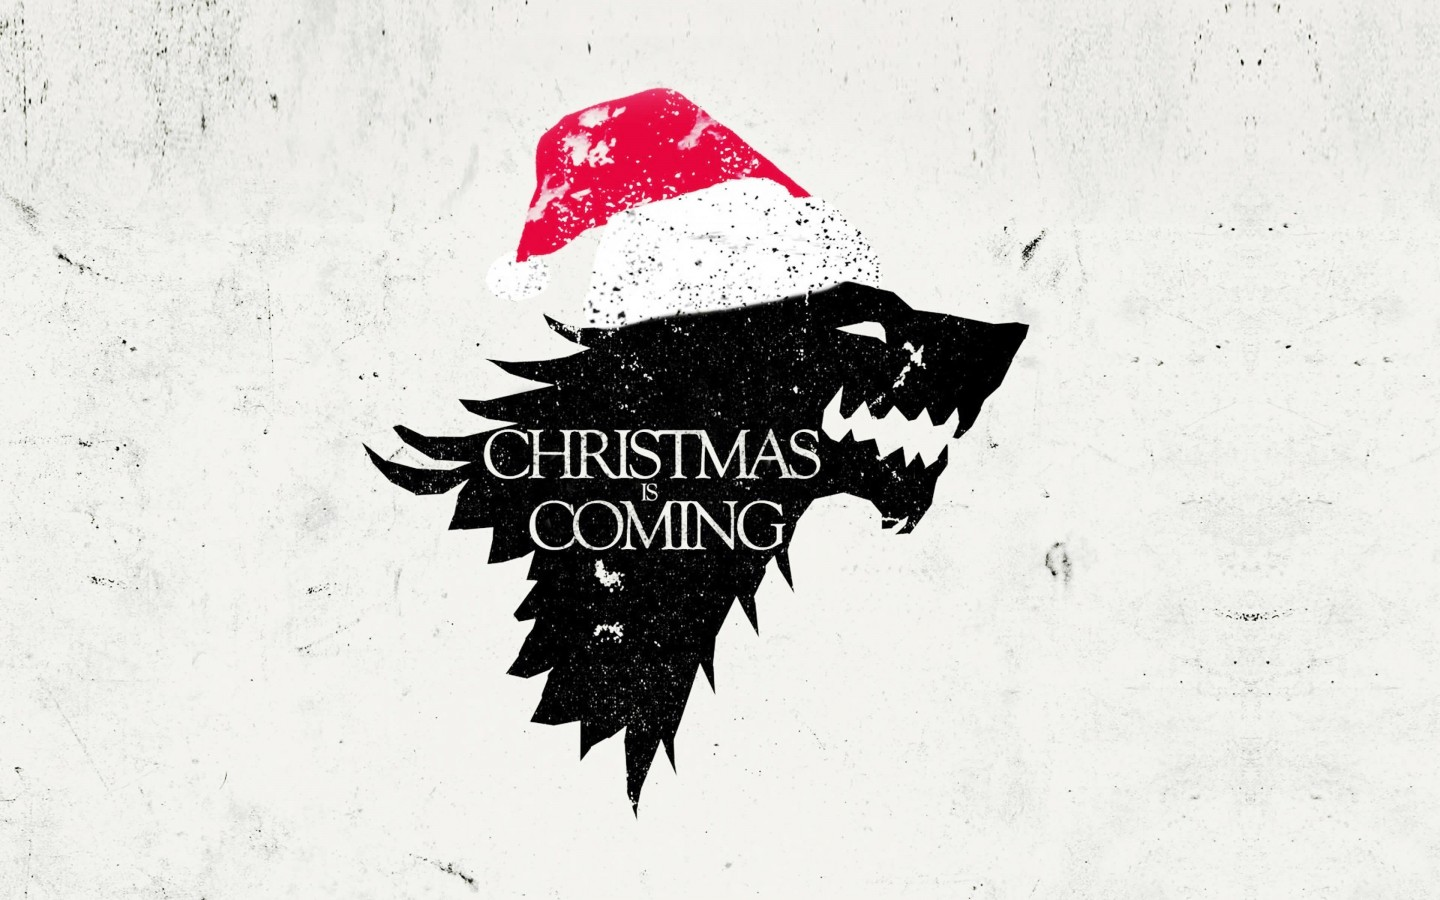 Christmas is Coming Wallpaper for Desktop 1440x900